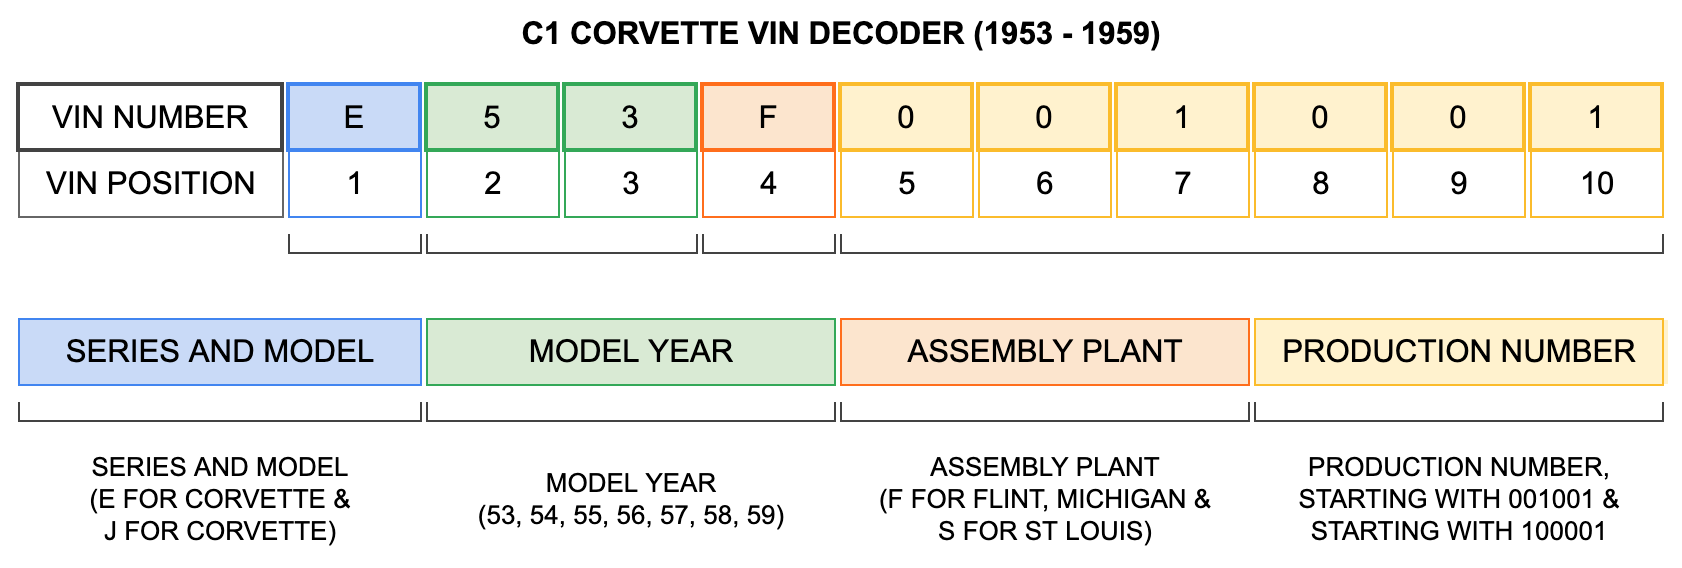 C1 Corvette VIN Decoder (1953-1959)